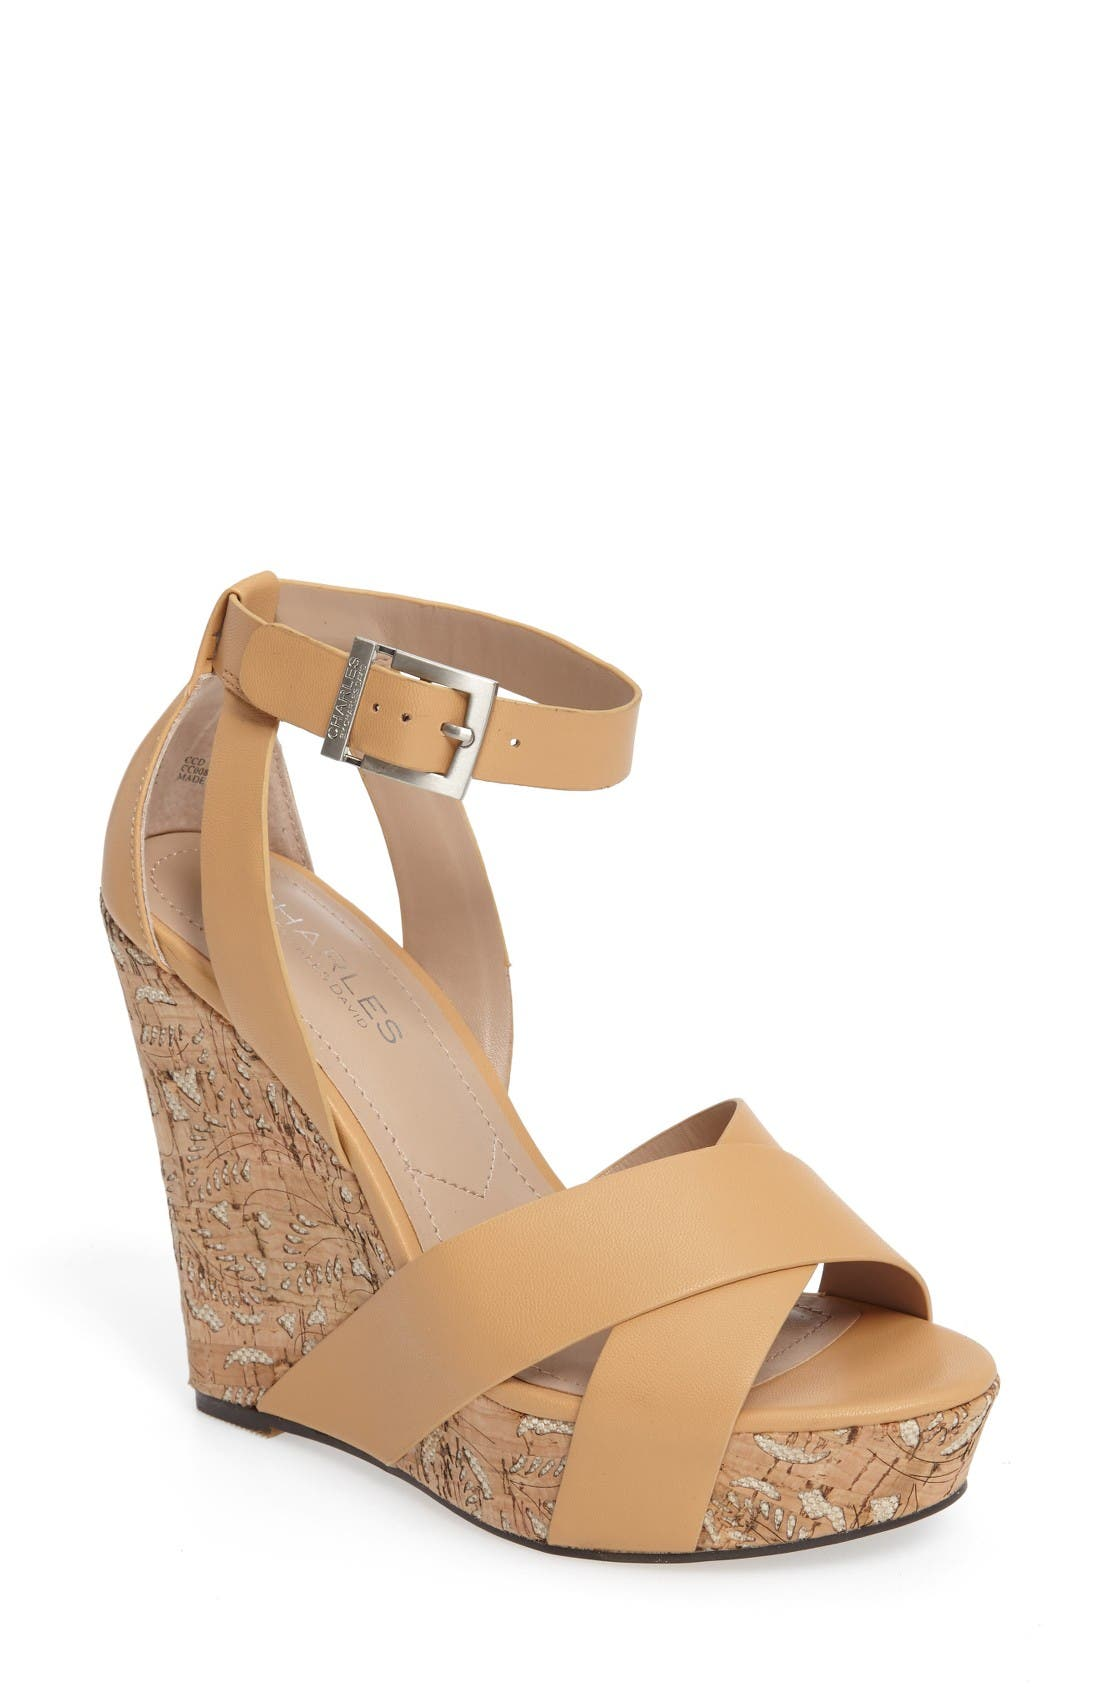 Alternate Image 1 Selected - Charles by Charles David Amsterdam Platform Wedge Sandal (Women)